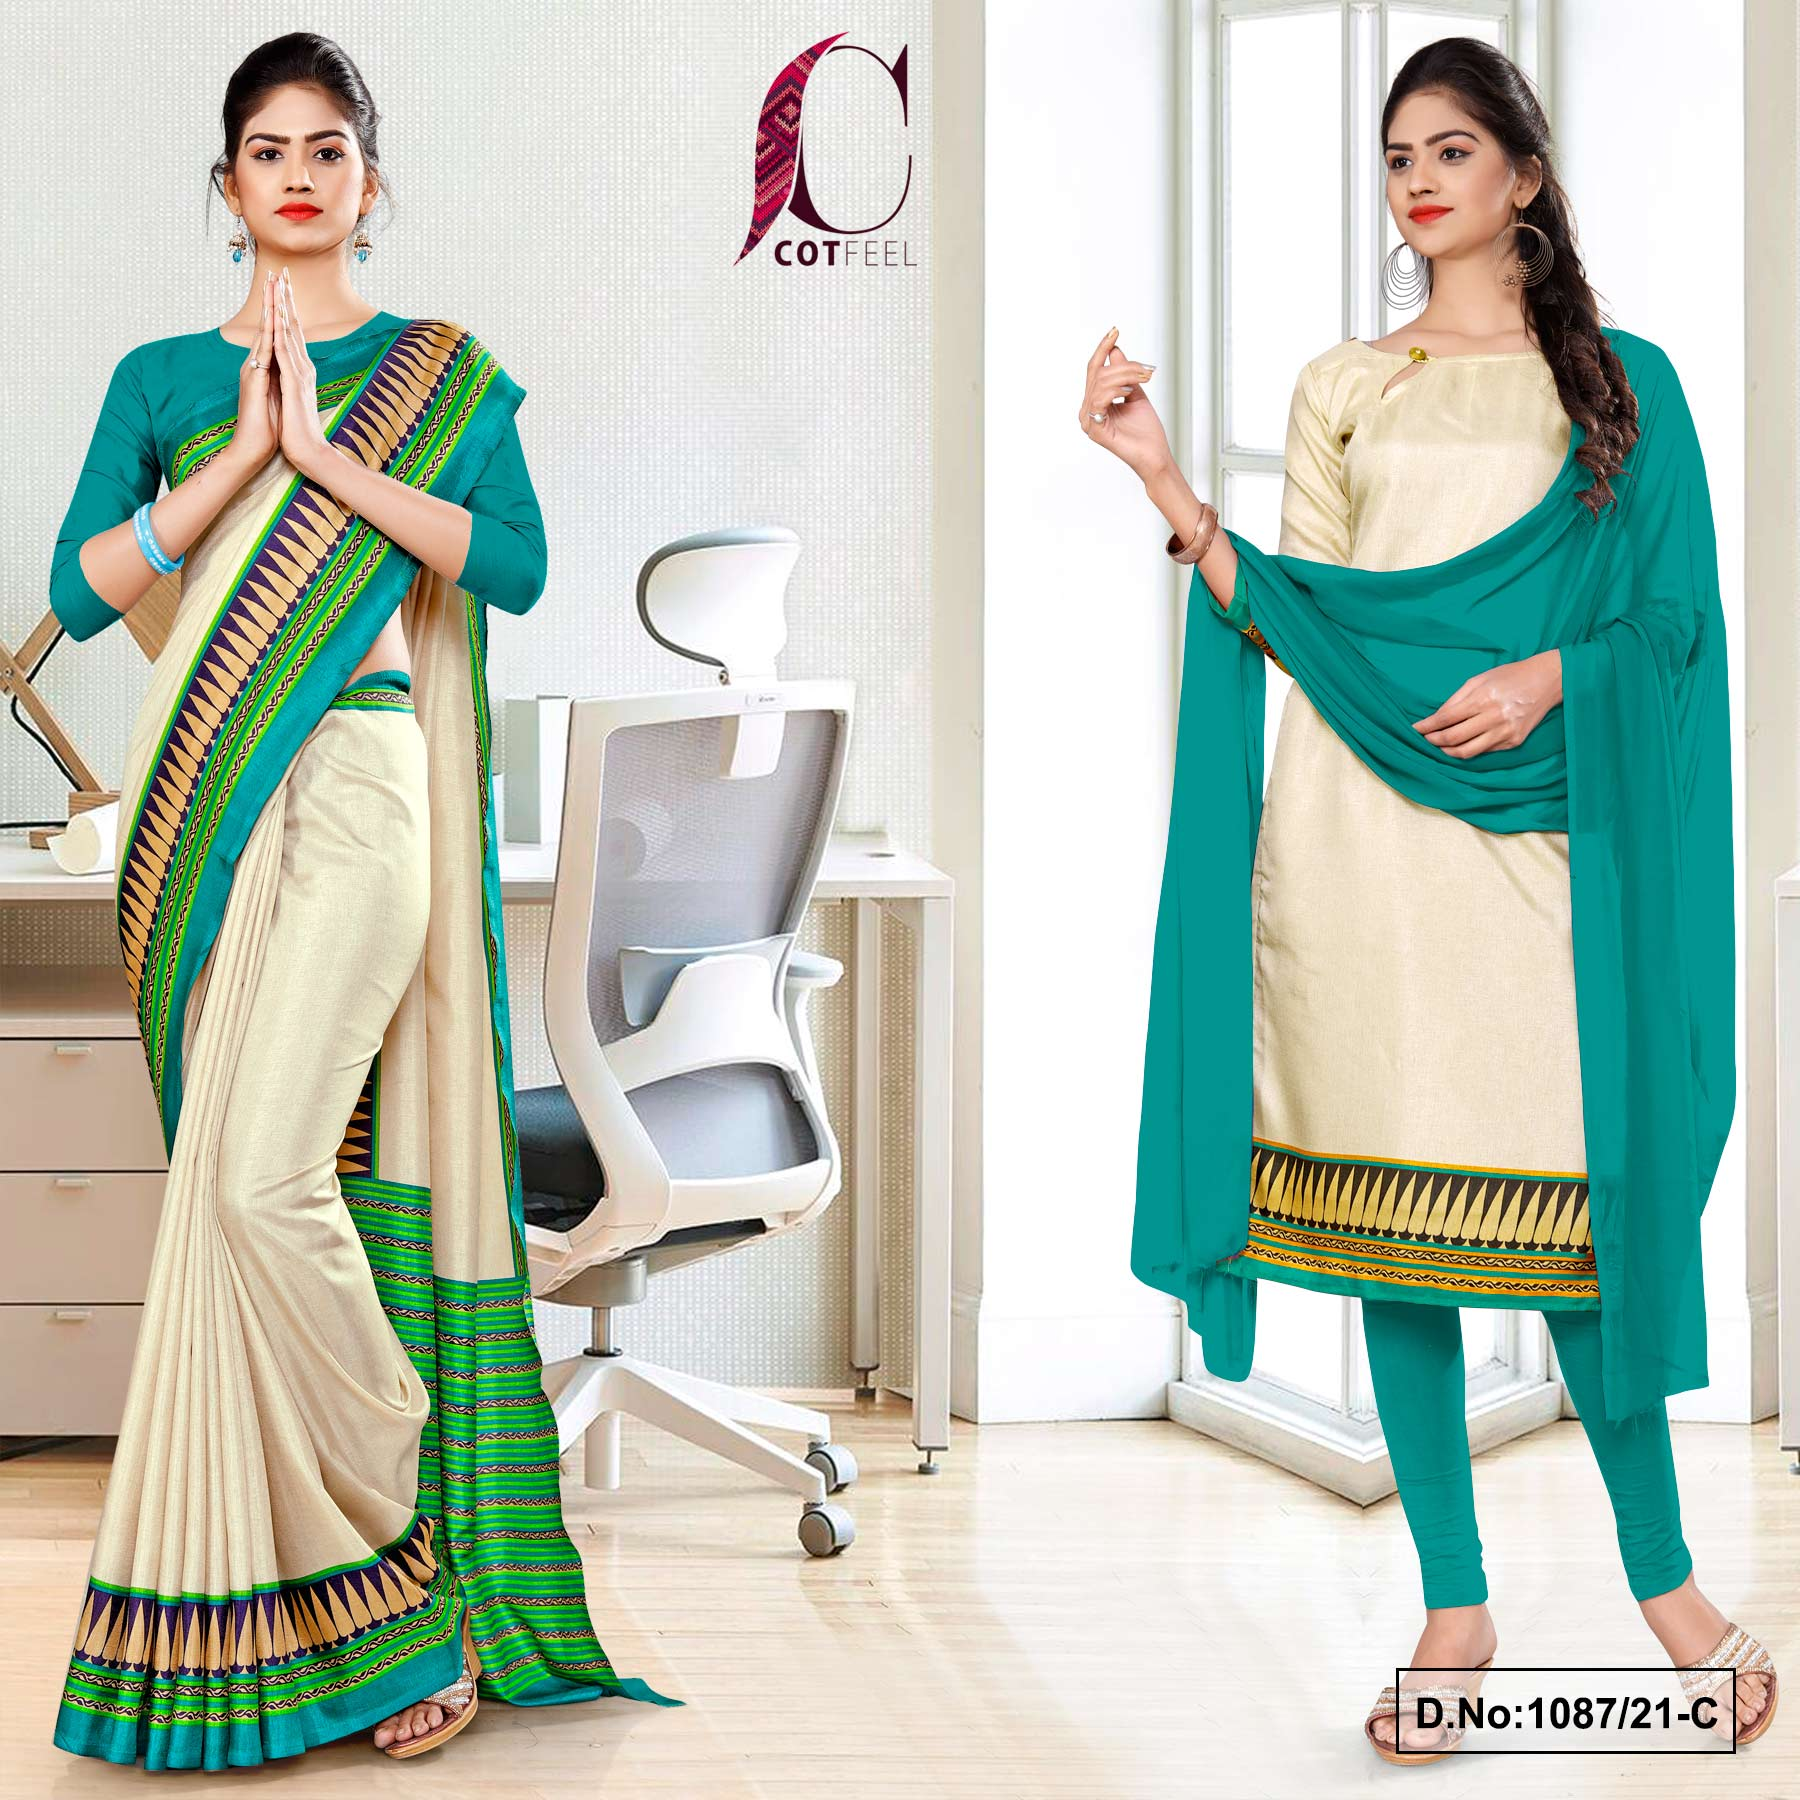 Cream Green Plain Gala Border Polycotton Cotfeel Saree Chudi Combo for Annual Function Uniform Sarees 1087